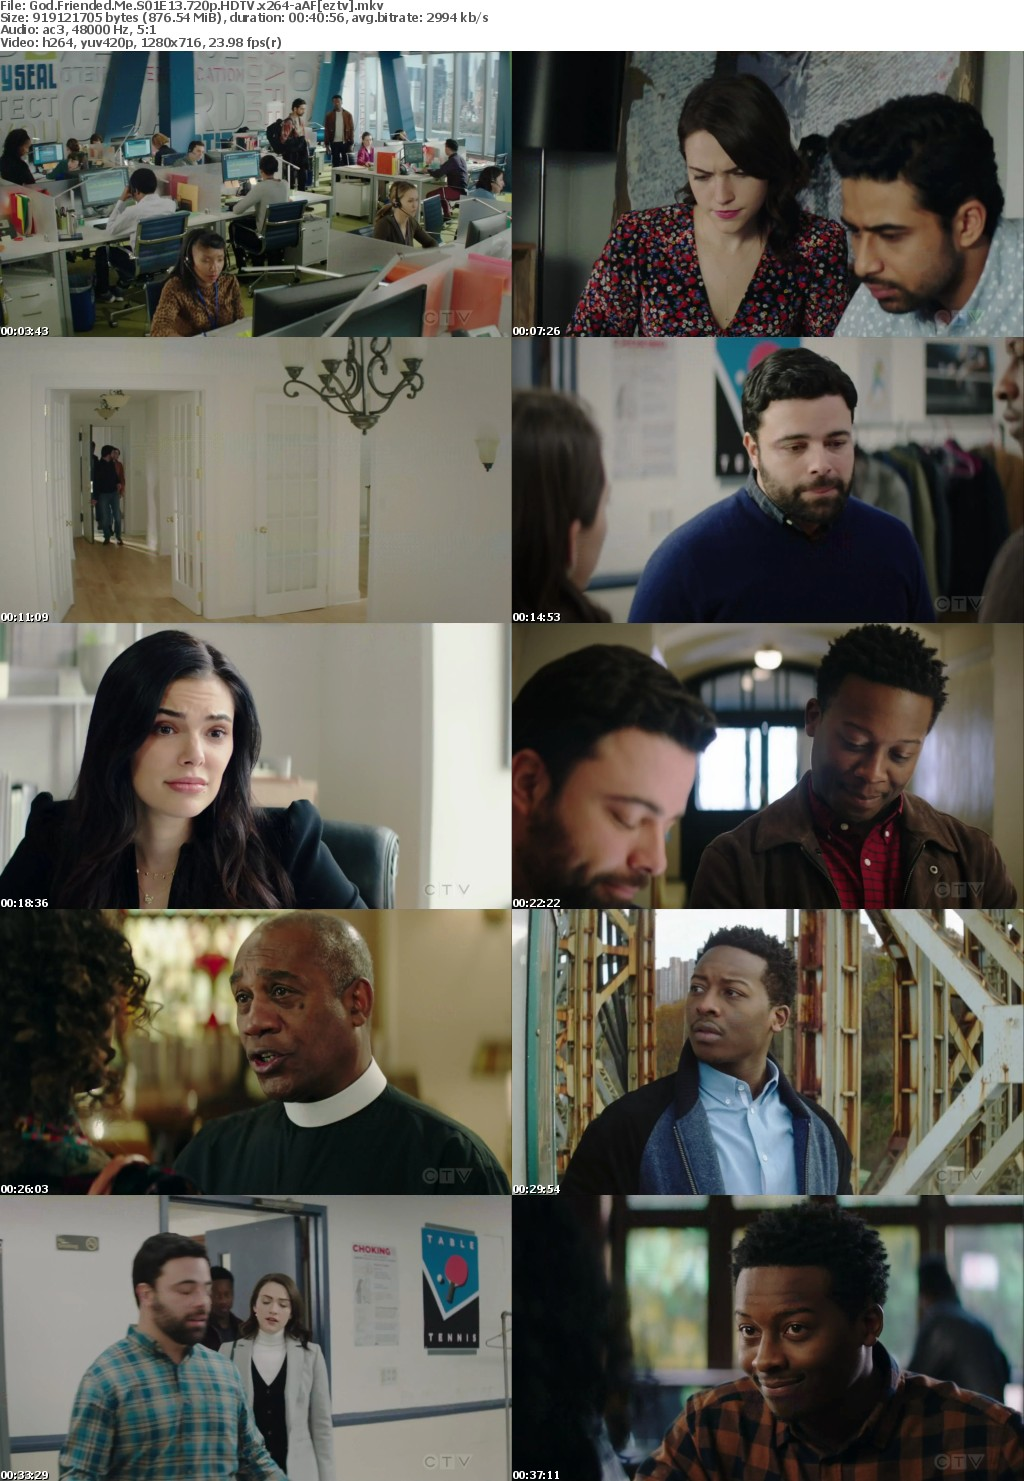 God Friended Me S01E13 720p HDTV x264-aAF